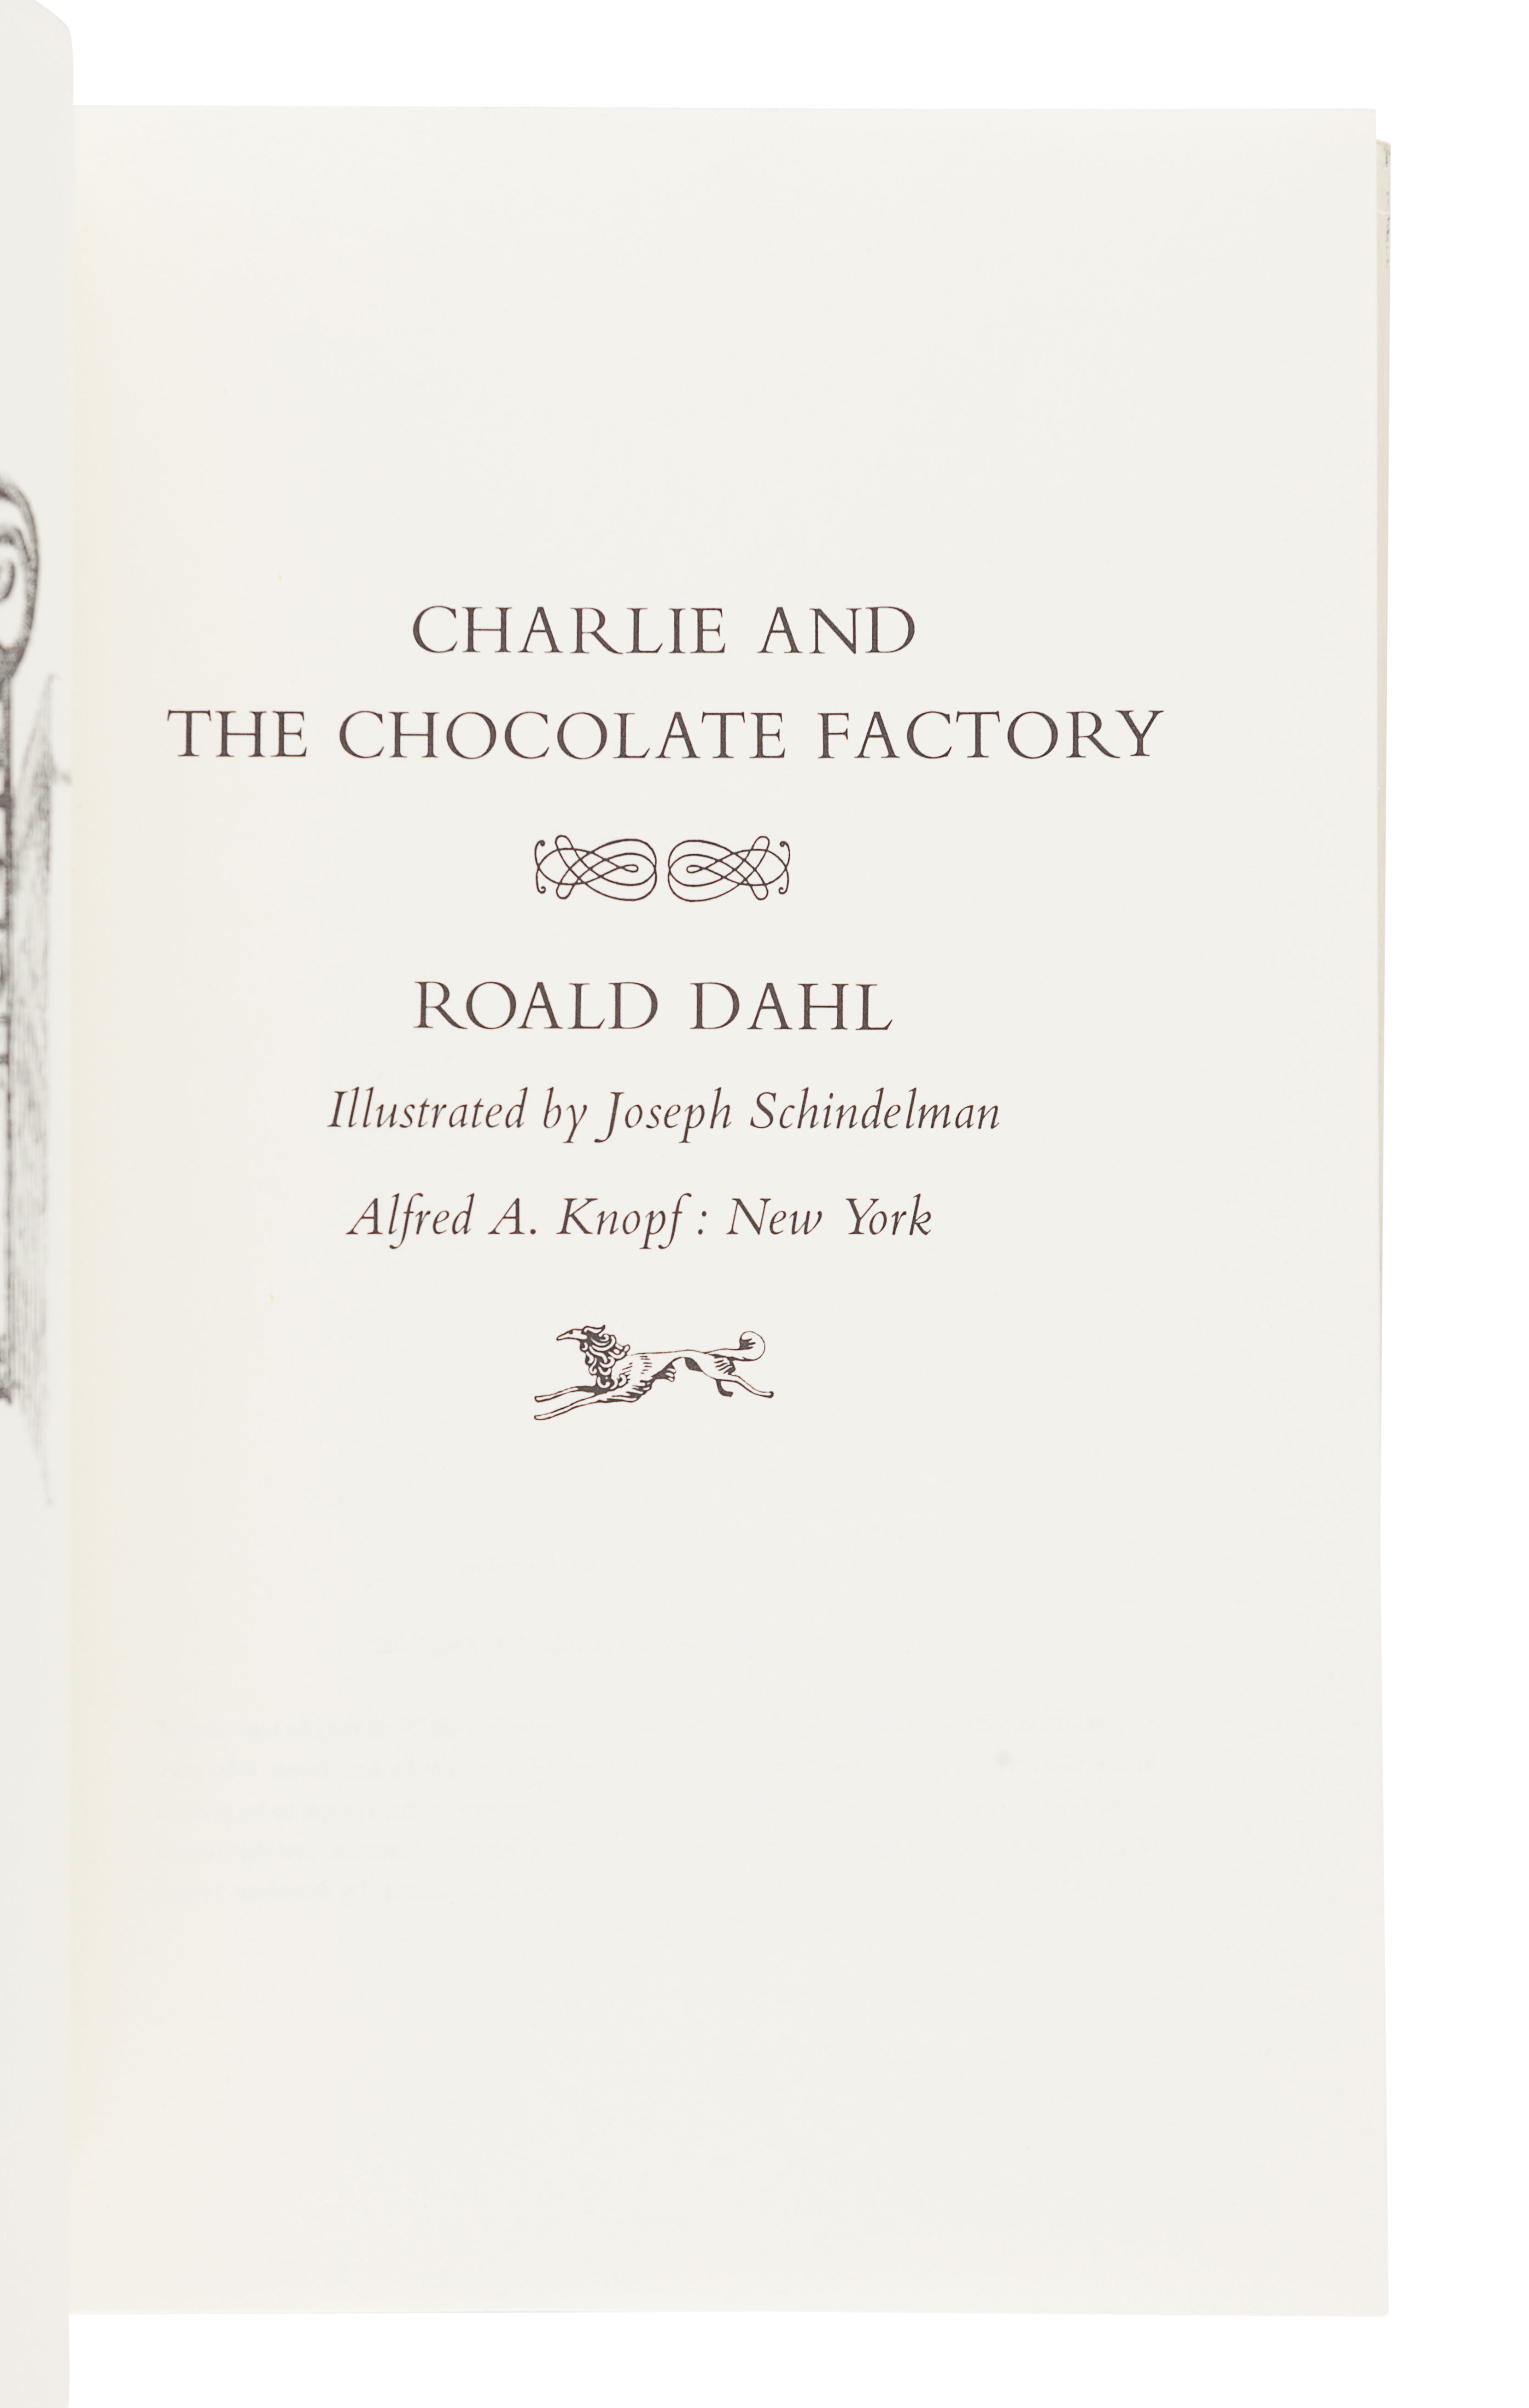 DAHL, Roald (1916-1990). Charlie and the Chocolate Factory. New York: Alfred A. Knopf, 1964. - Image 2 of 3